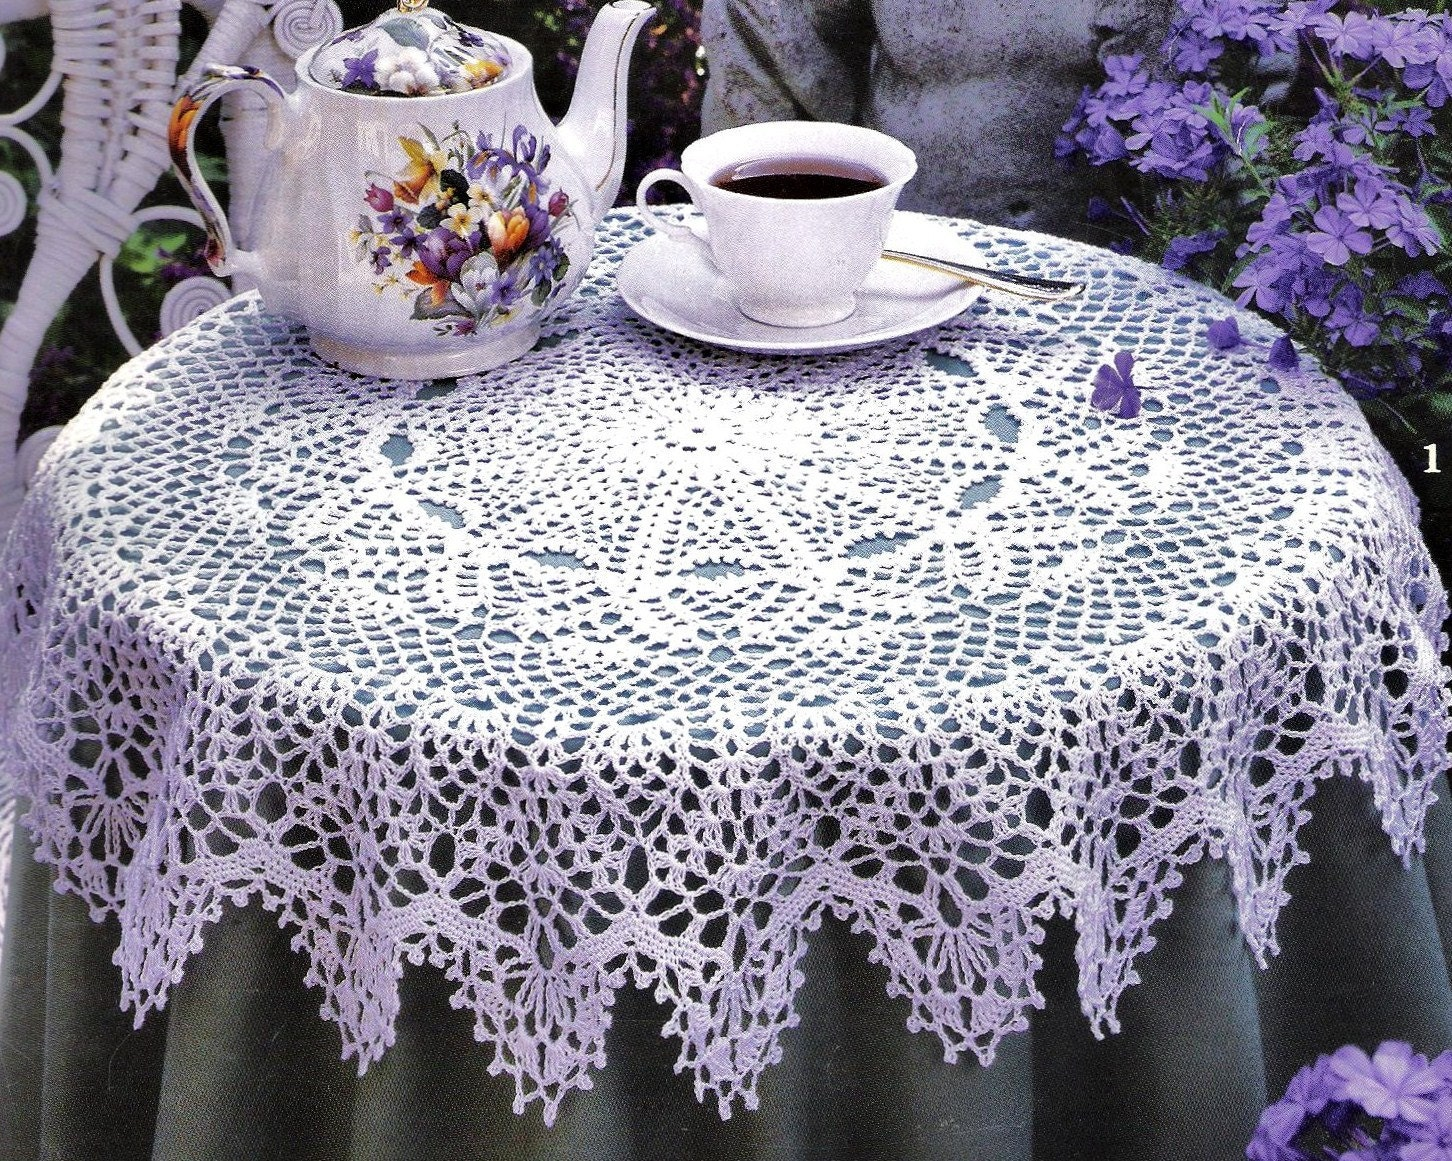 Free Crochet Oblong Tablecloth Patterns : Round Crochet Tablecloth Patterns Booklet by StitchySpot ...